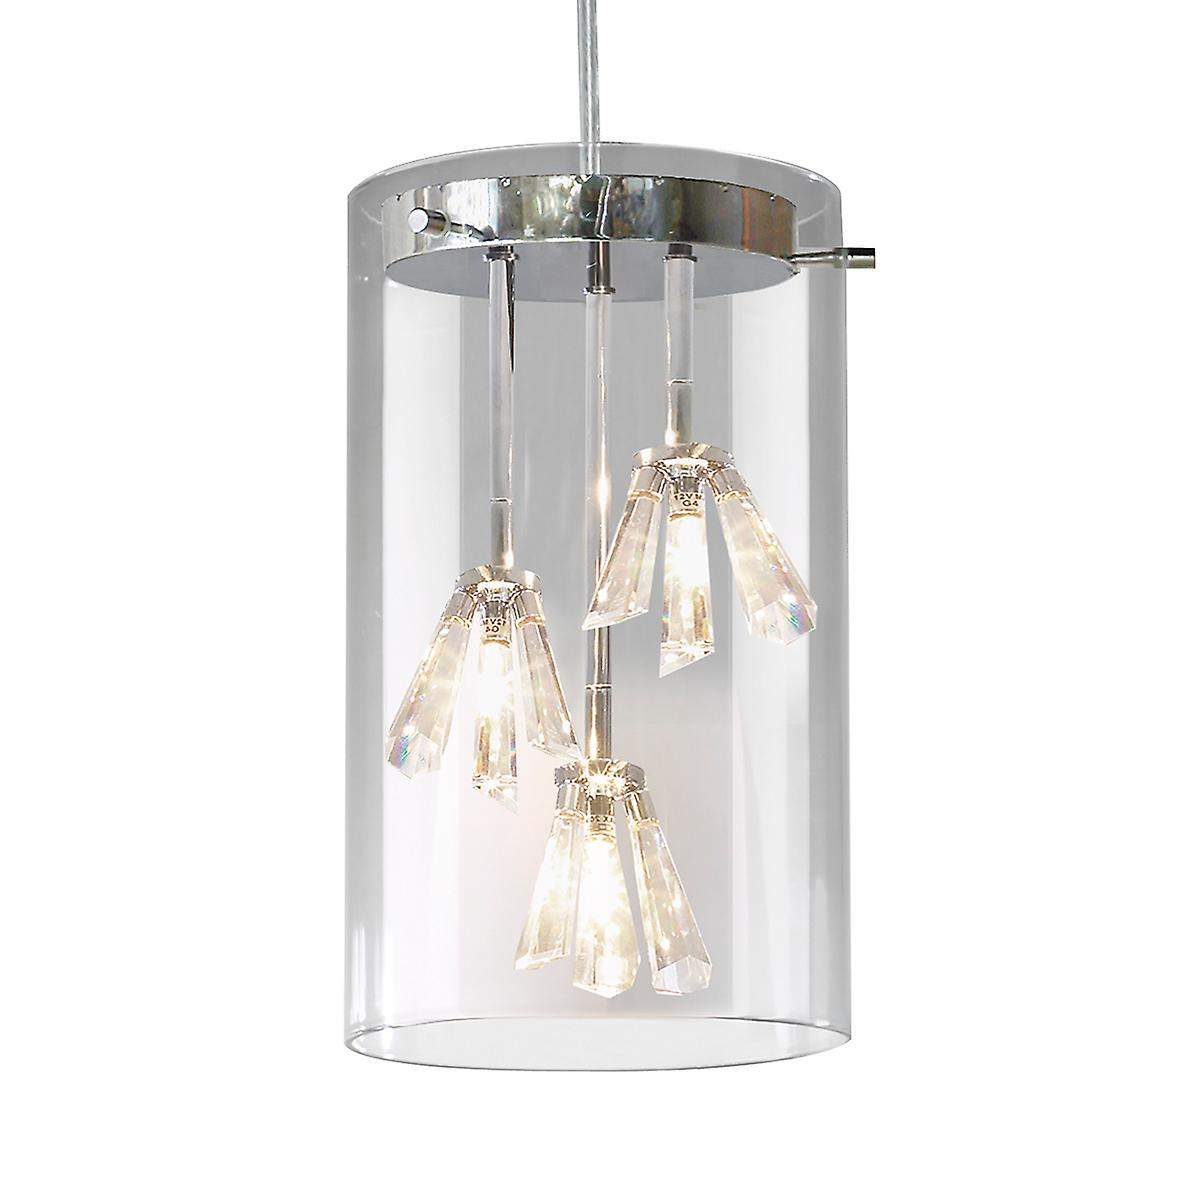 Dar SOM0350 Somerset Modern Polished Chrome 3 Light Pendant With Crystal Glass